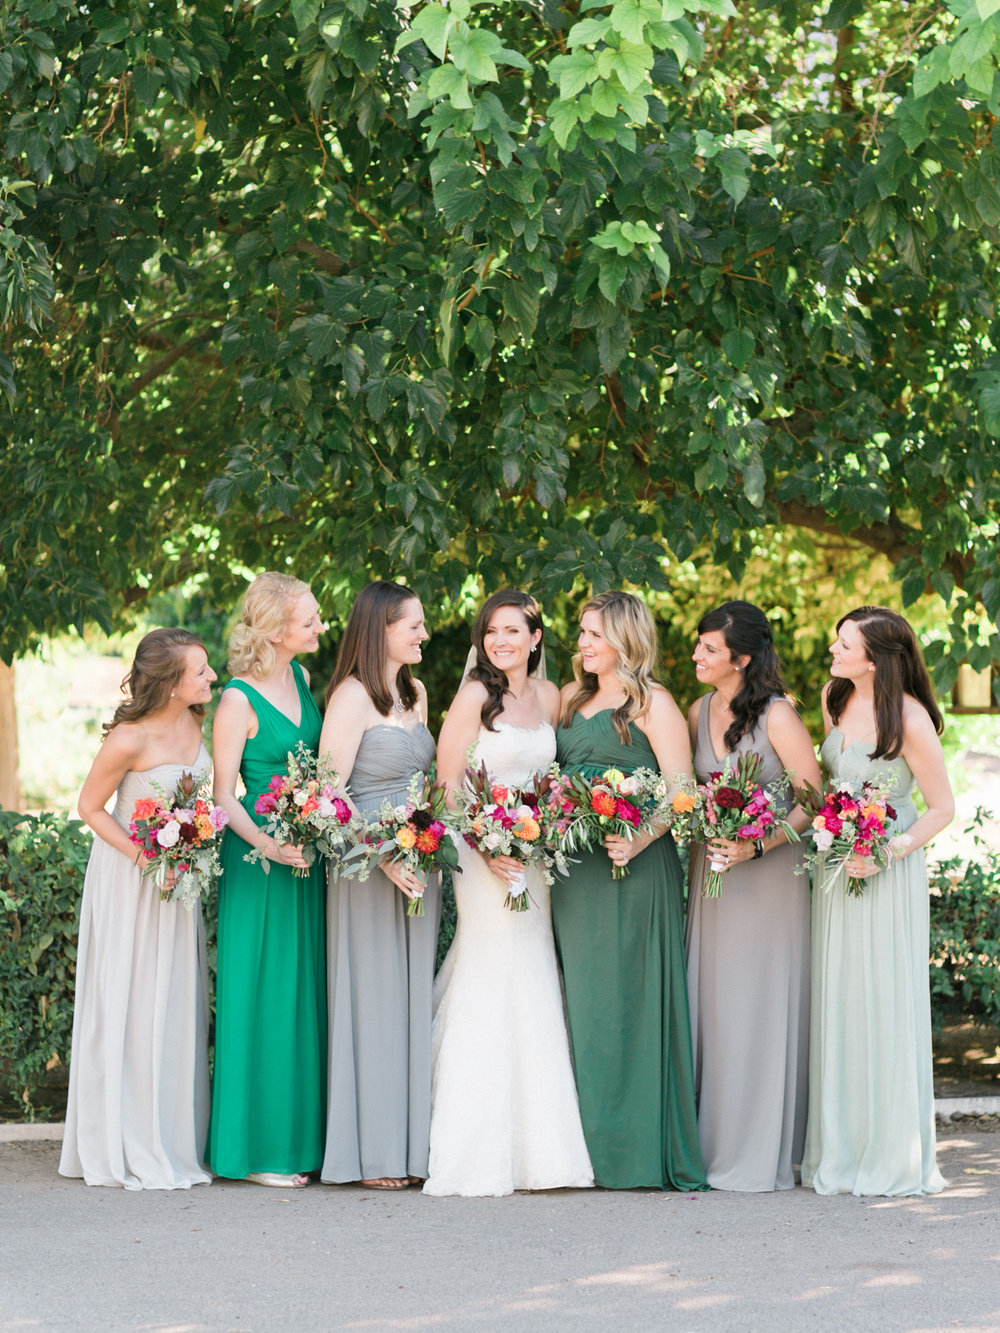 Gorgeous bridesmaids in greens, teals and grays smiling at the bride